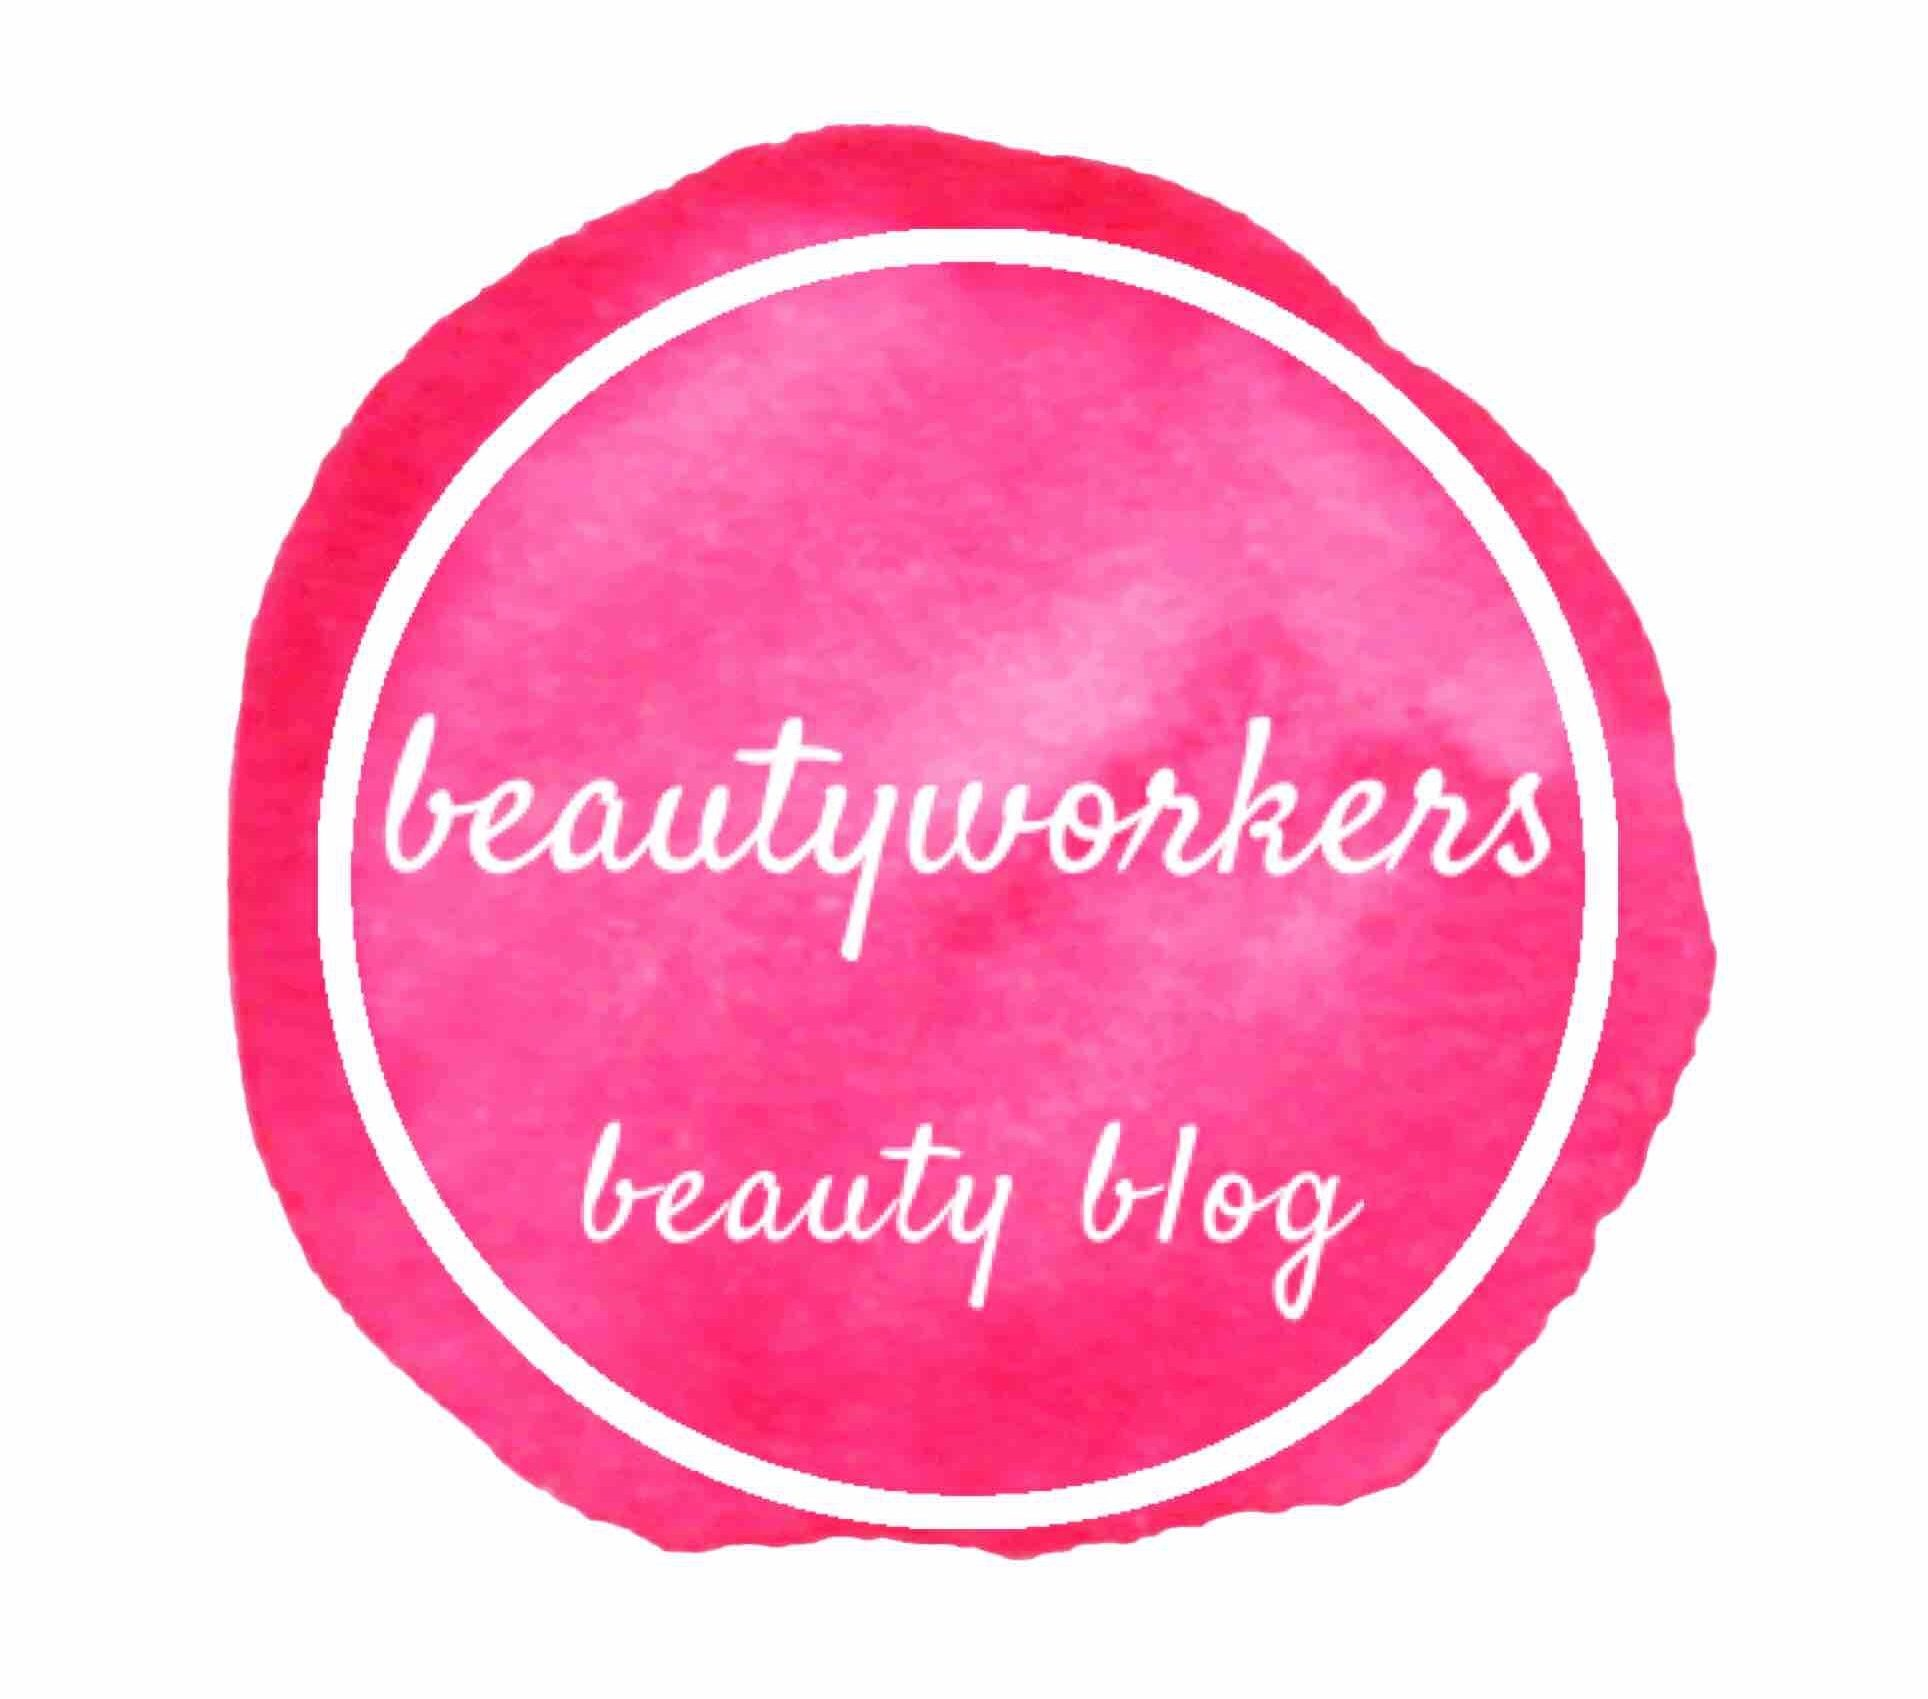 Beautyworkers blog